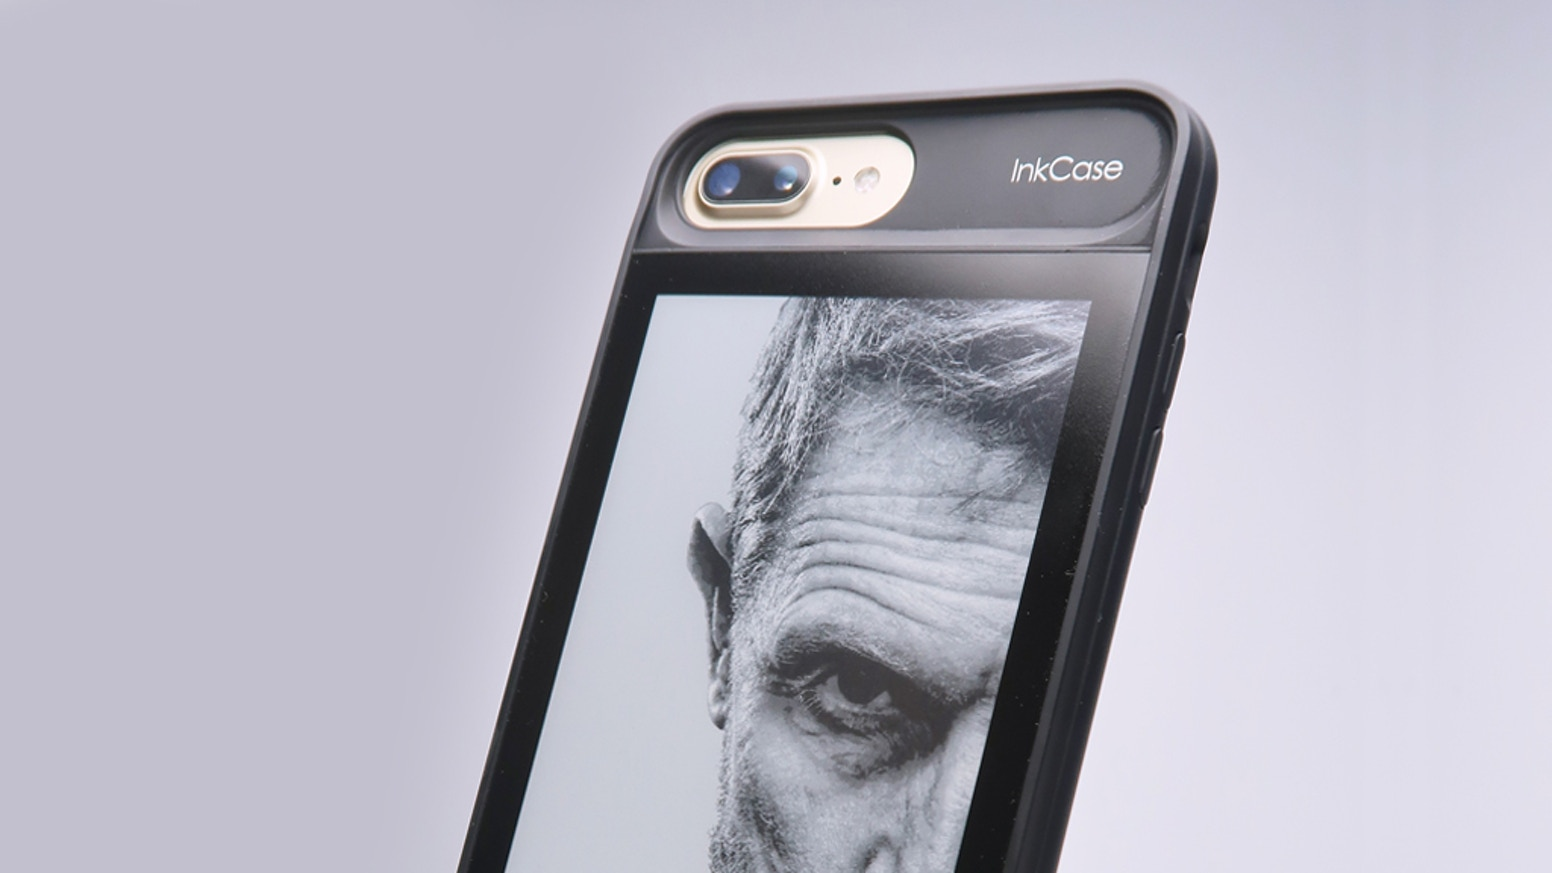 E Ink Smart Case Designed for Adventurers, Bookworms, Businessperson, Selfie-taker And Everyone Else. Fits iPhone 6/6s Plus as well!